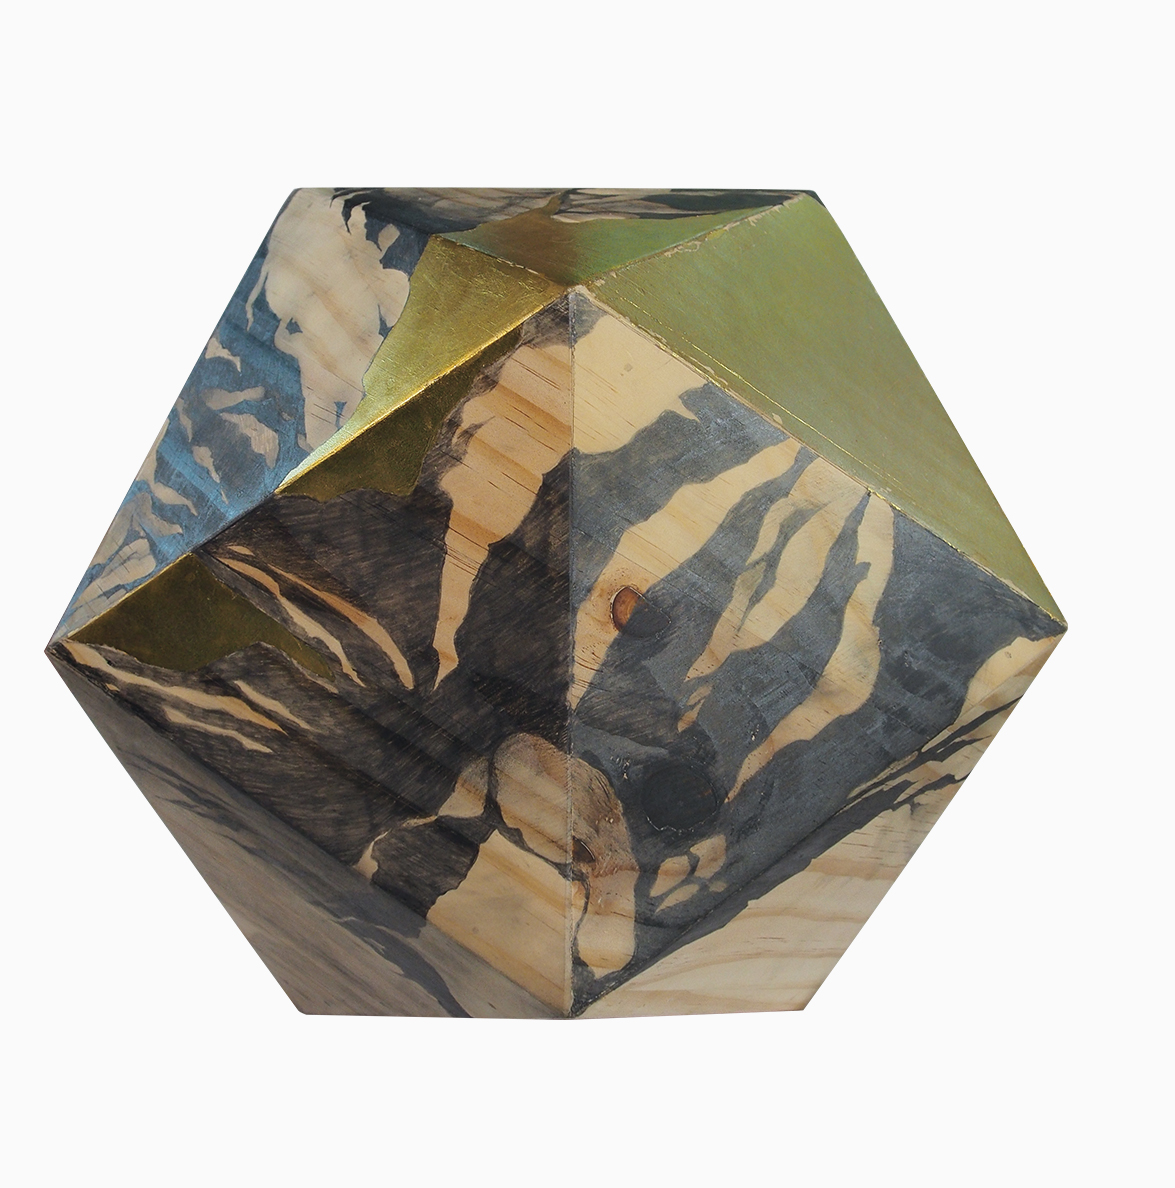 Untitled (Icosahedron #2)